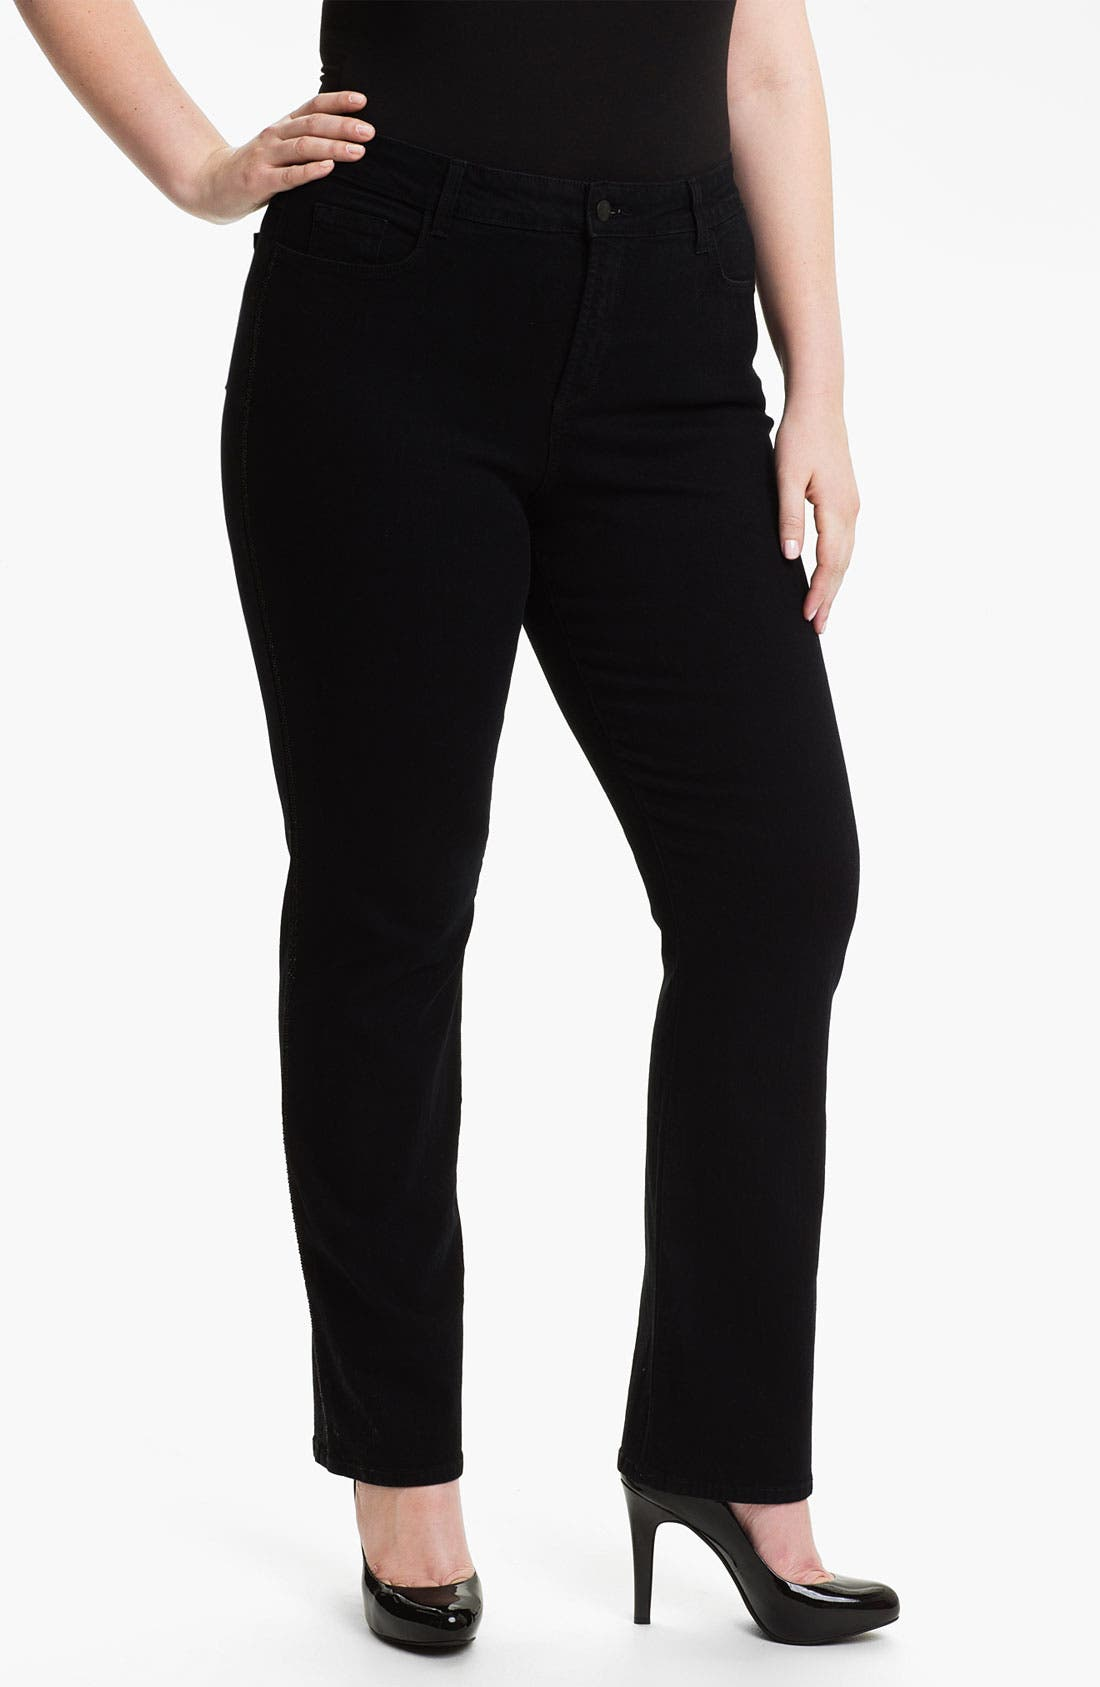 Main Image - NYDJ 'Marilyn' Tuxedo Stripe Straight Leg Jeans (Plus)